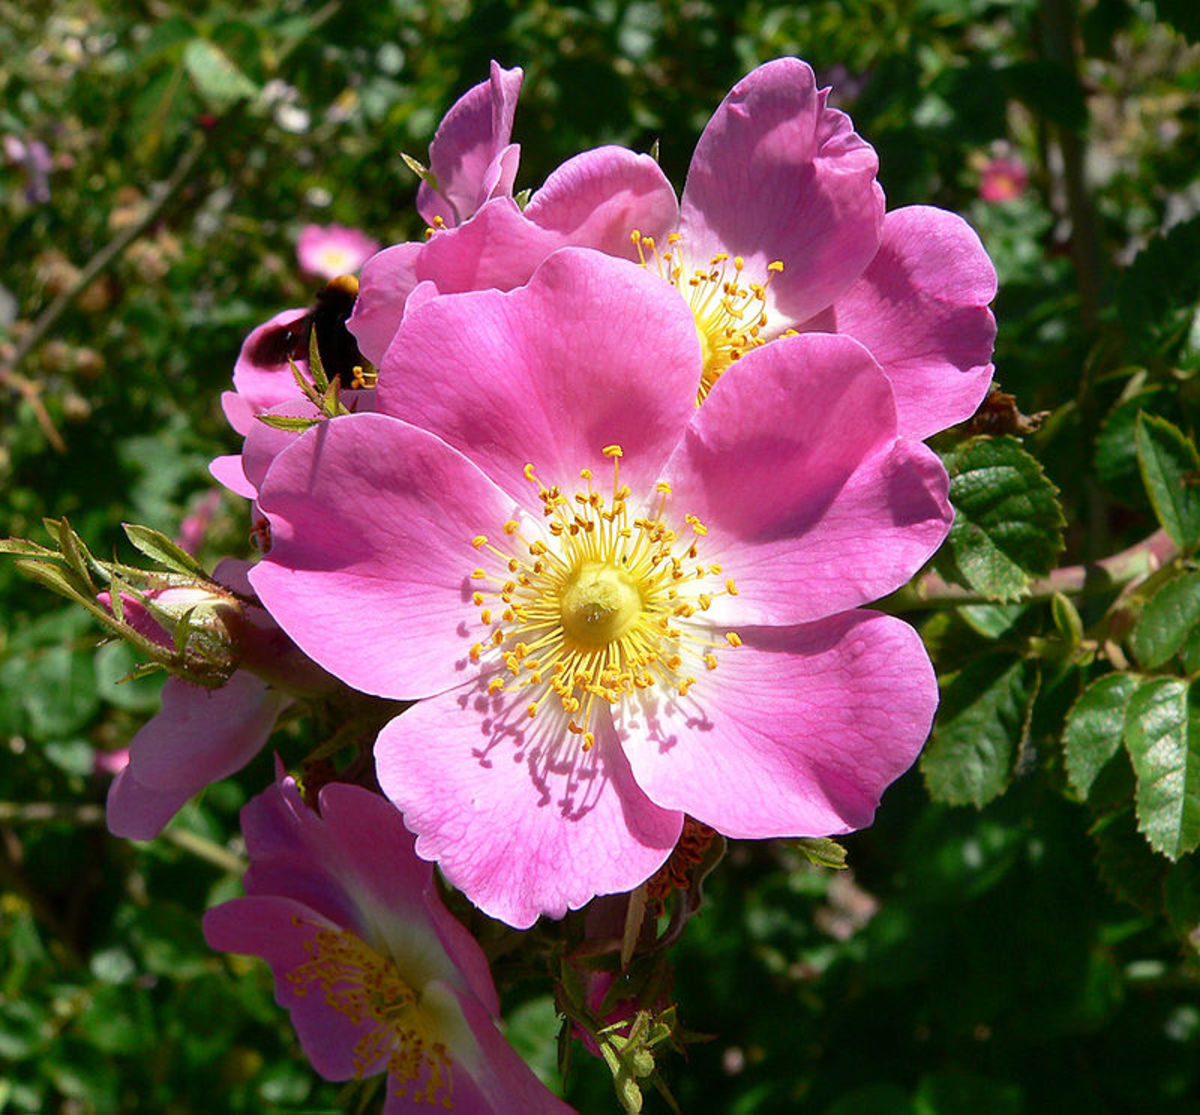 Heirloom Roses: The Eglantine (Sweet Briar) Rose